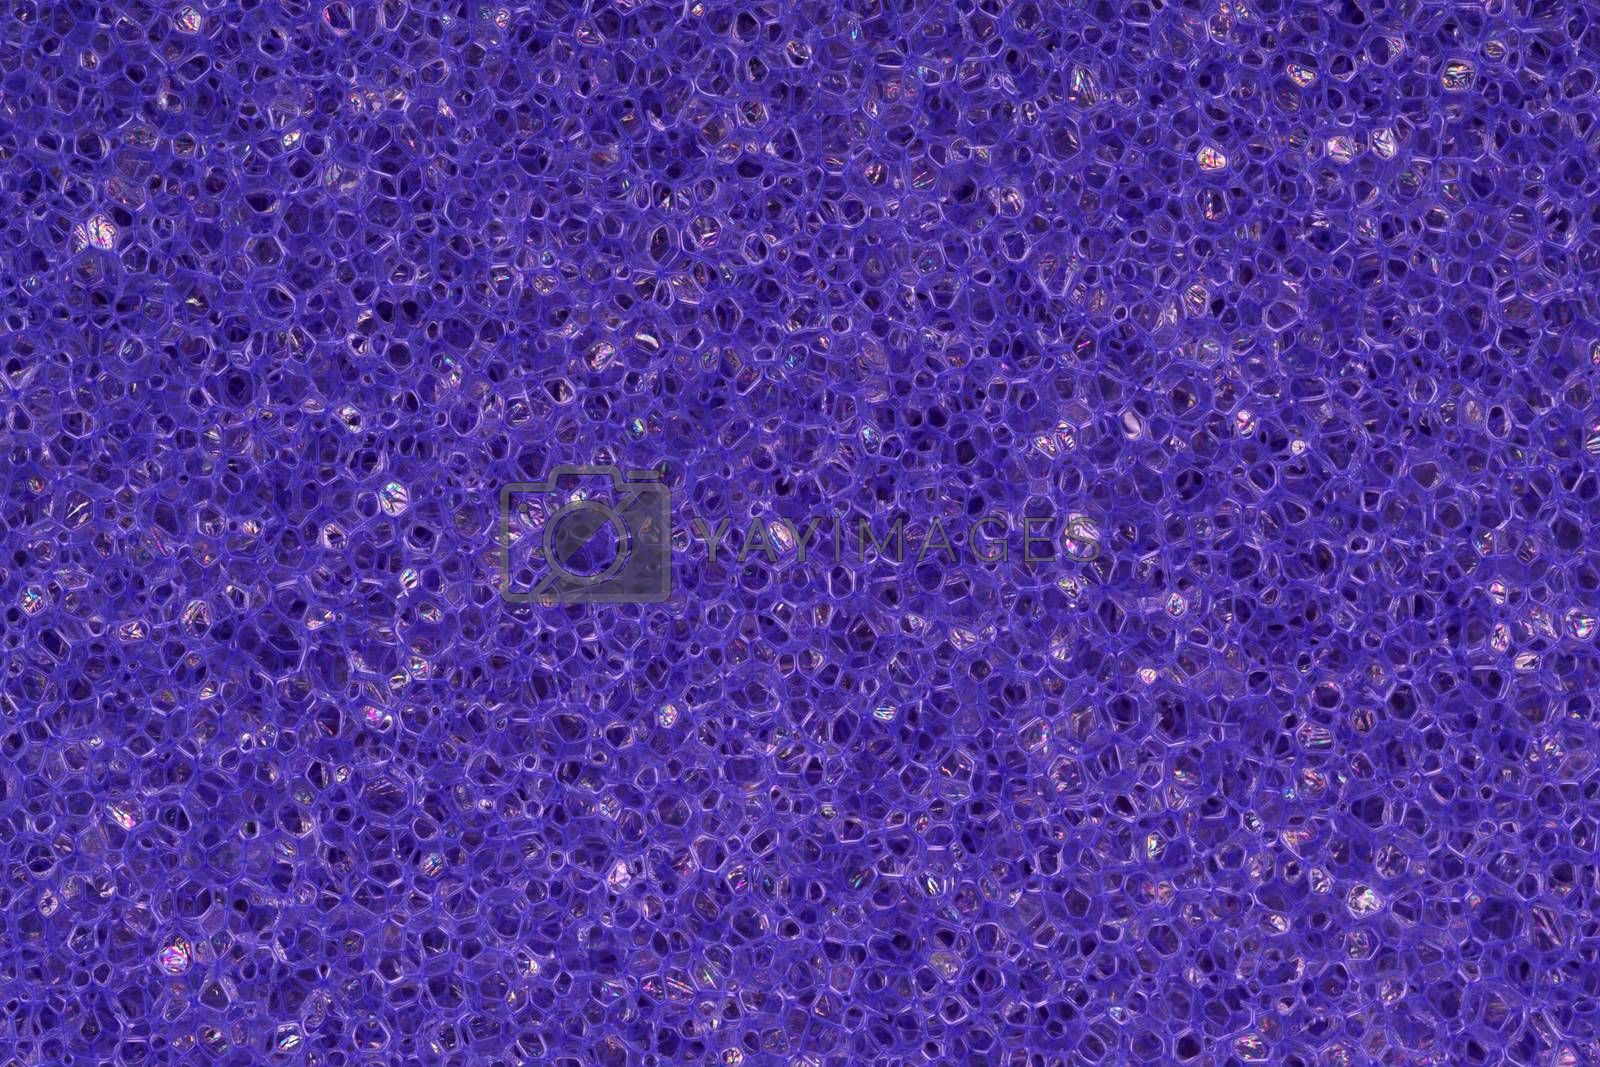 Royalty free image of Abstract background, a purple sponge by johan10